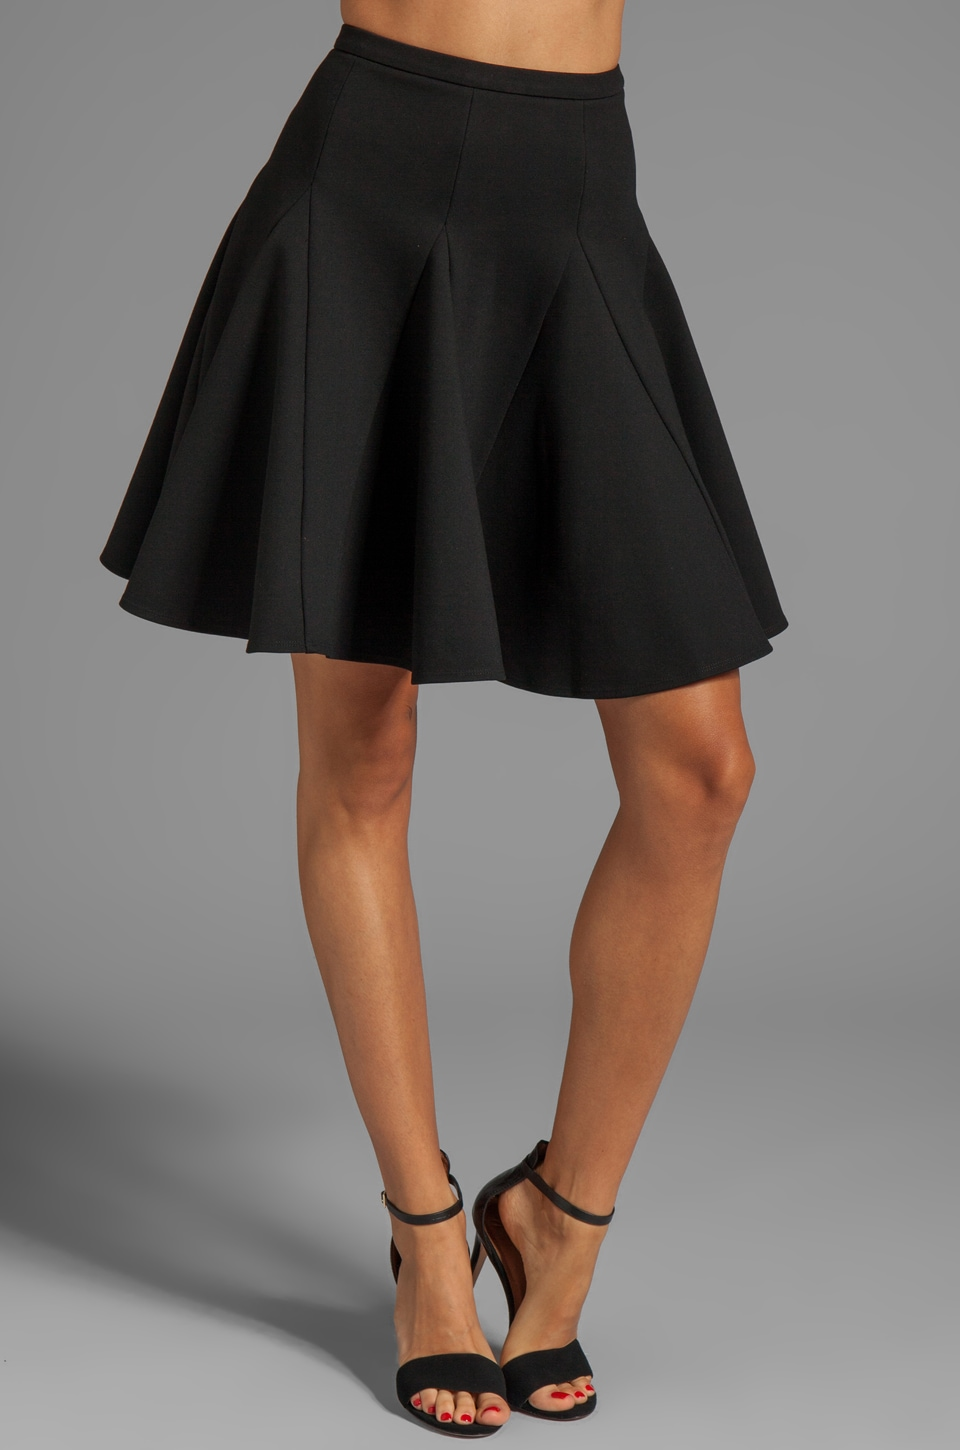 Halston Heritage Circle Ponte Skirt in Black